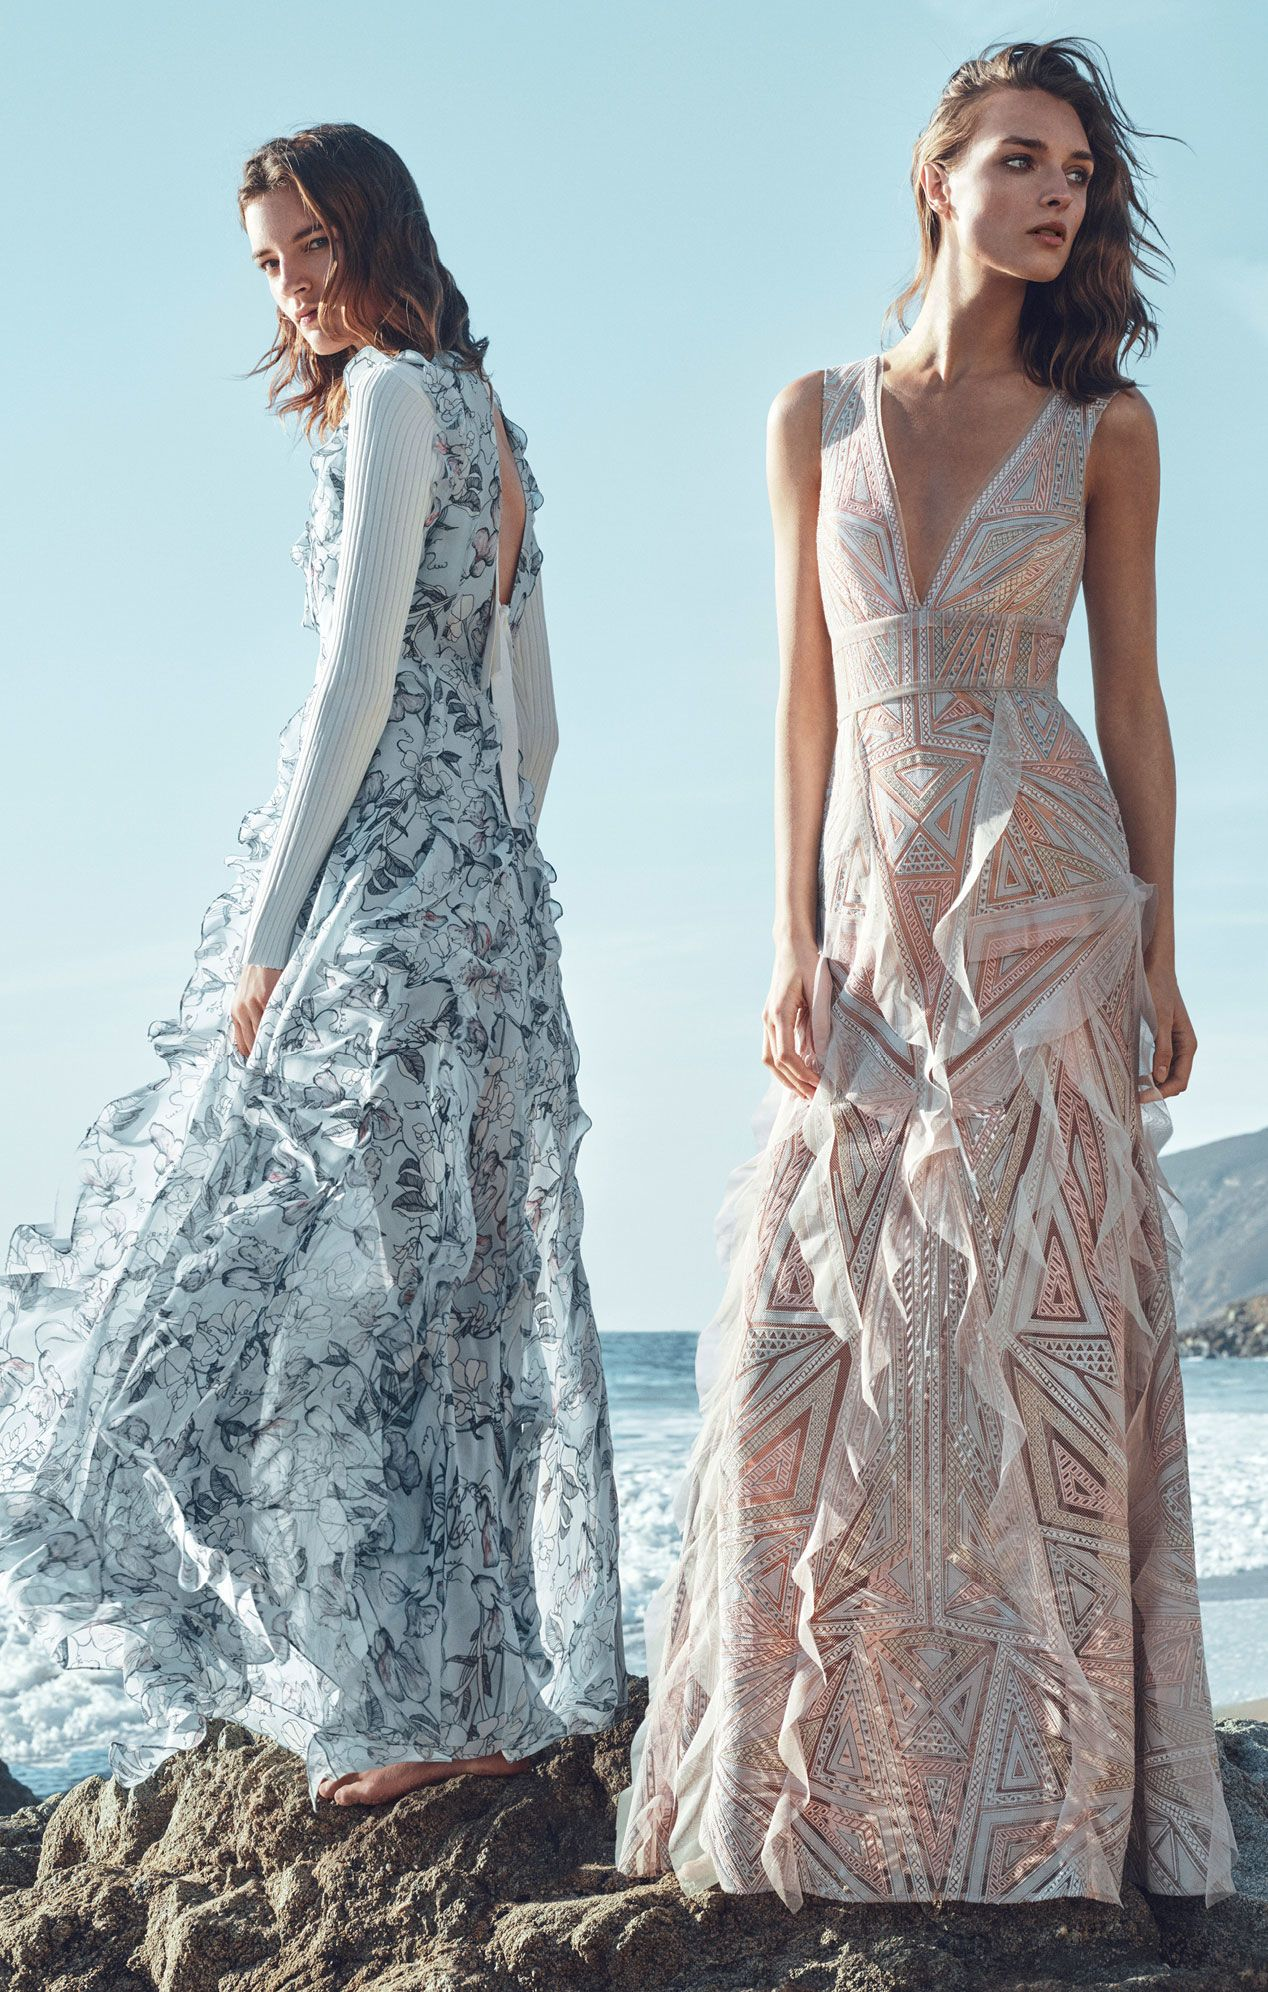 Aislinn Lace Print Gown | Prom | Pinterest | Printed gowns, Lace ...